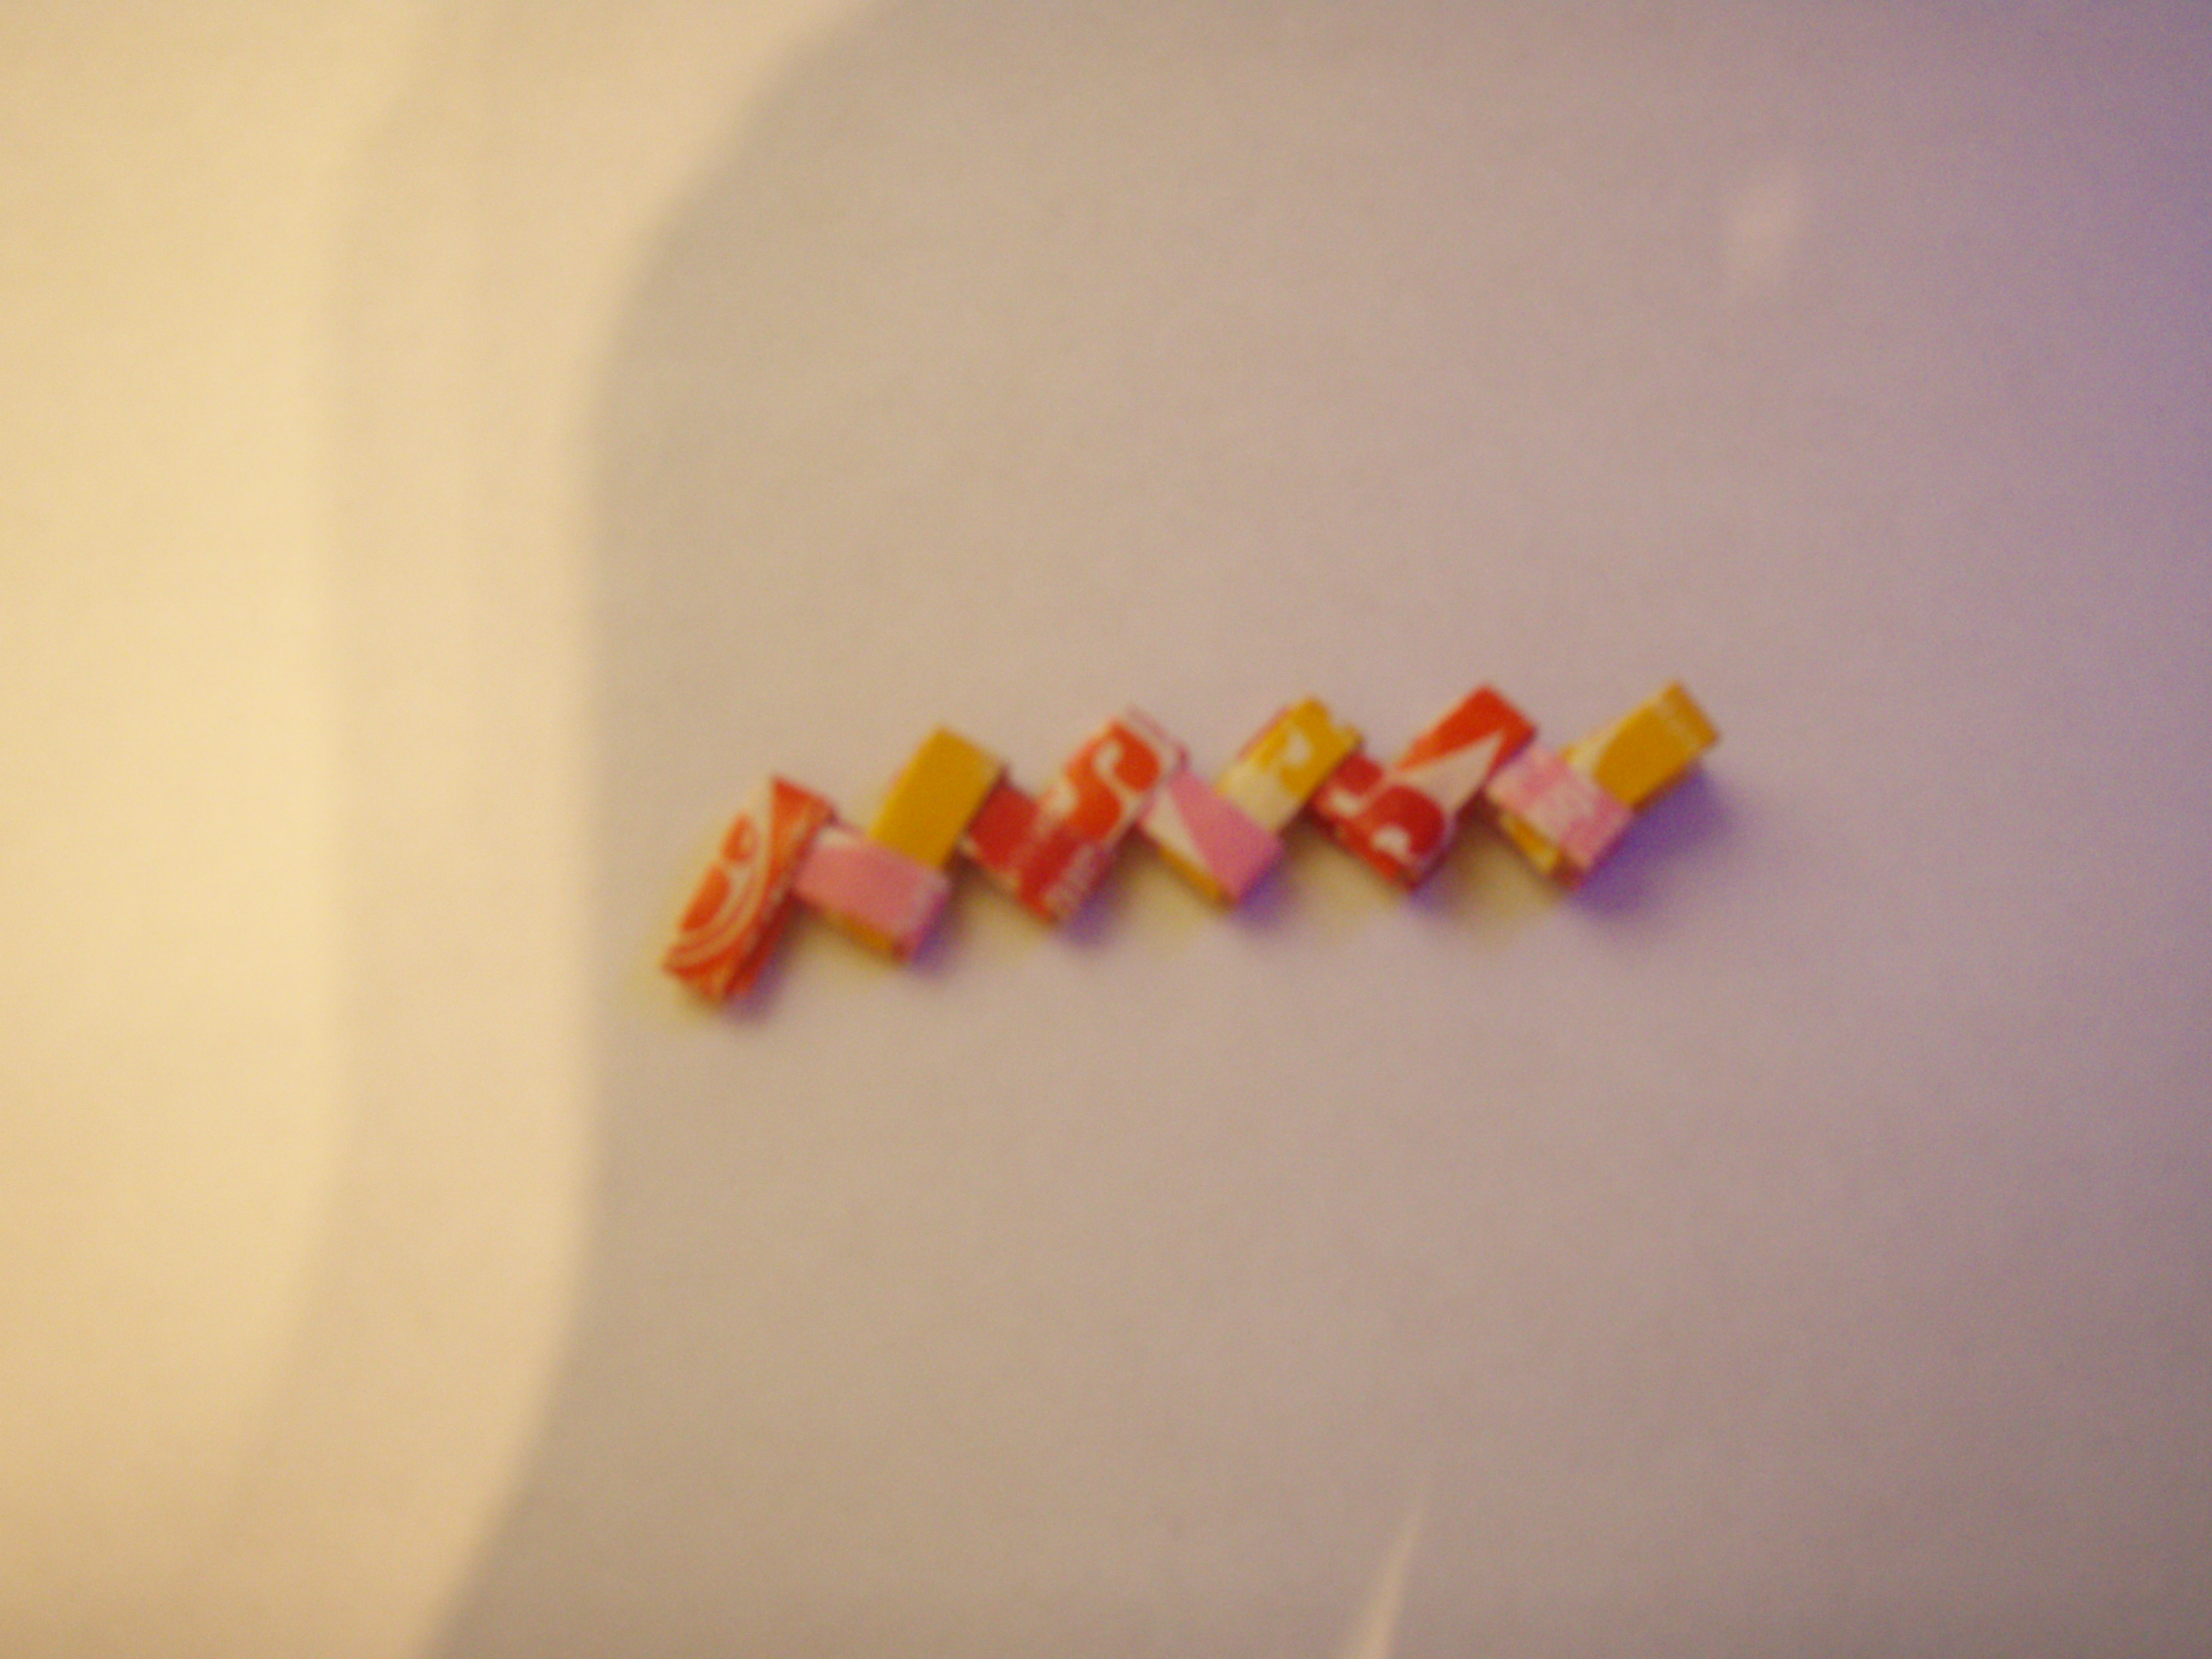 How to make a bracelet out of Starburst wrappers